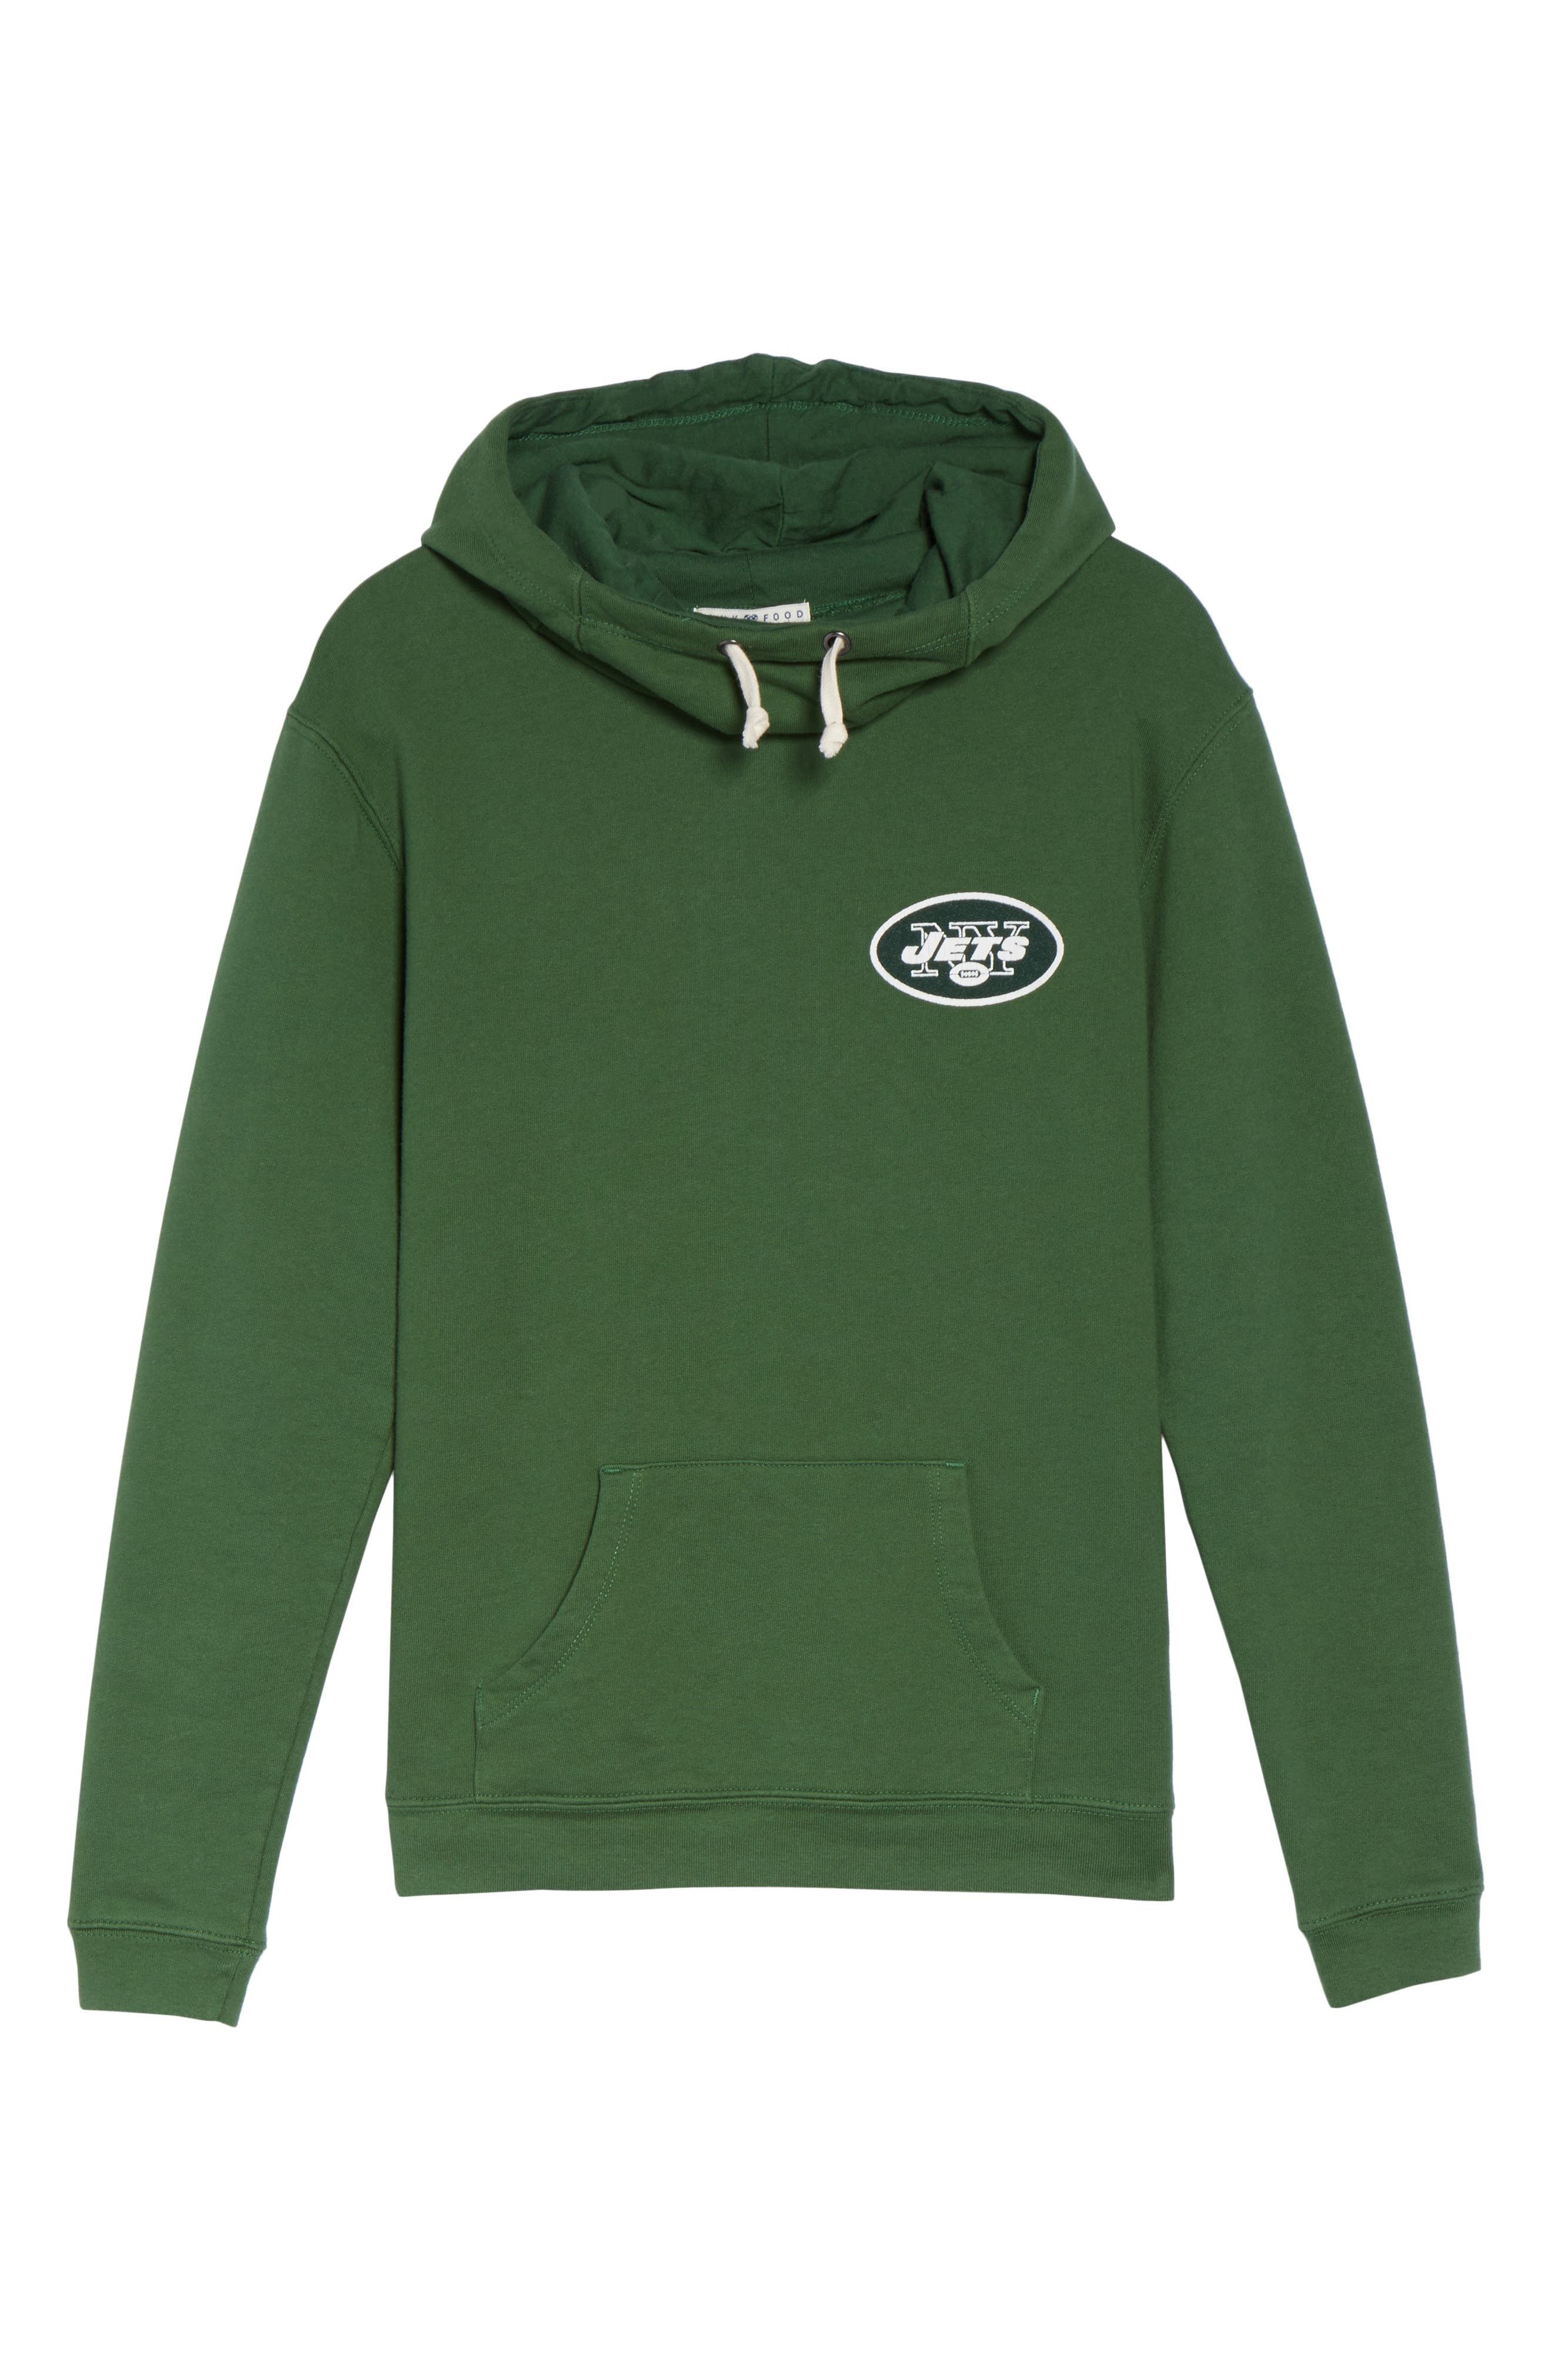 NFL New York Jets Sunday Hoodie,                             Alternate thumbnail 6, color,                             359